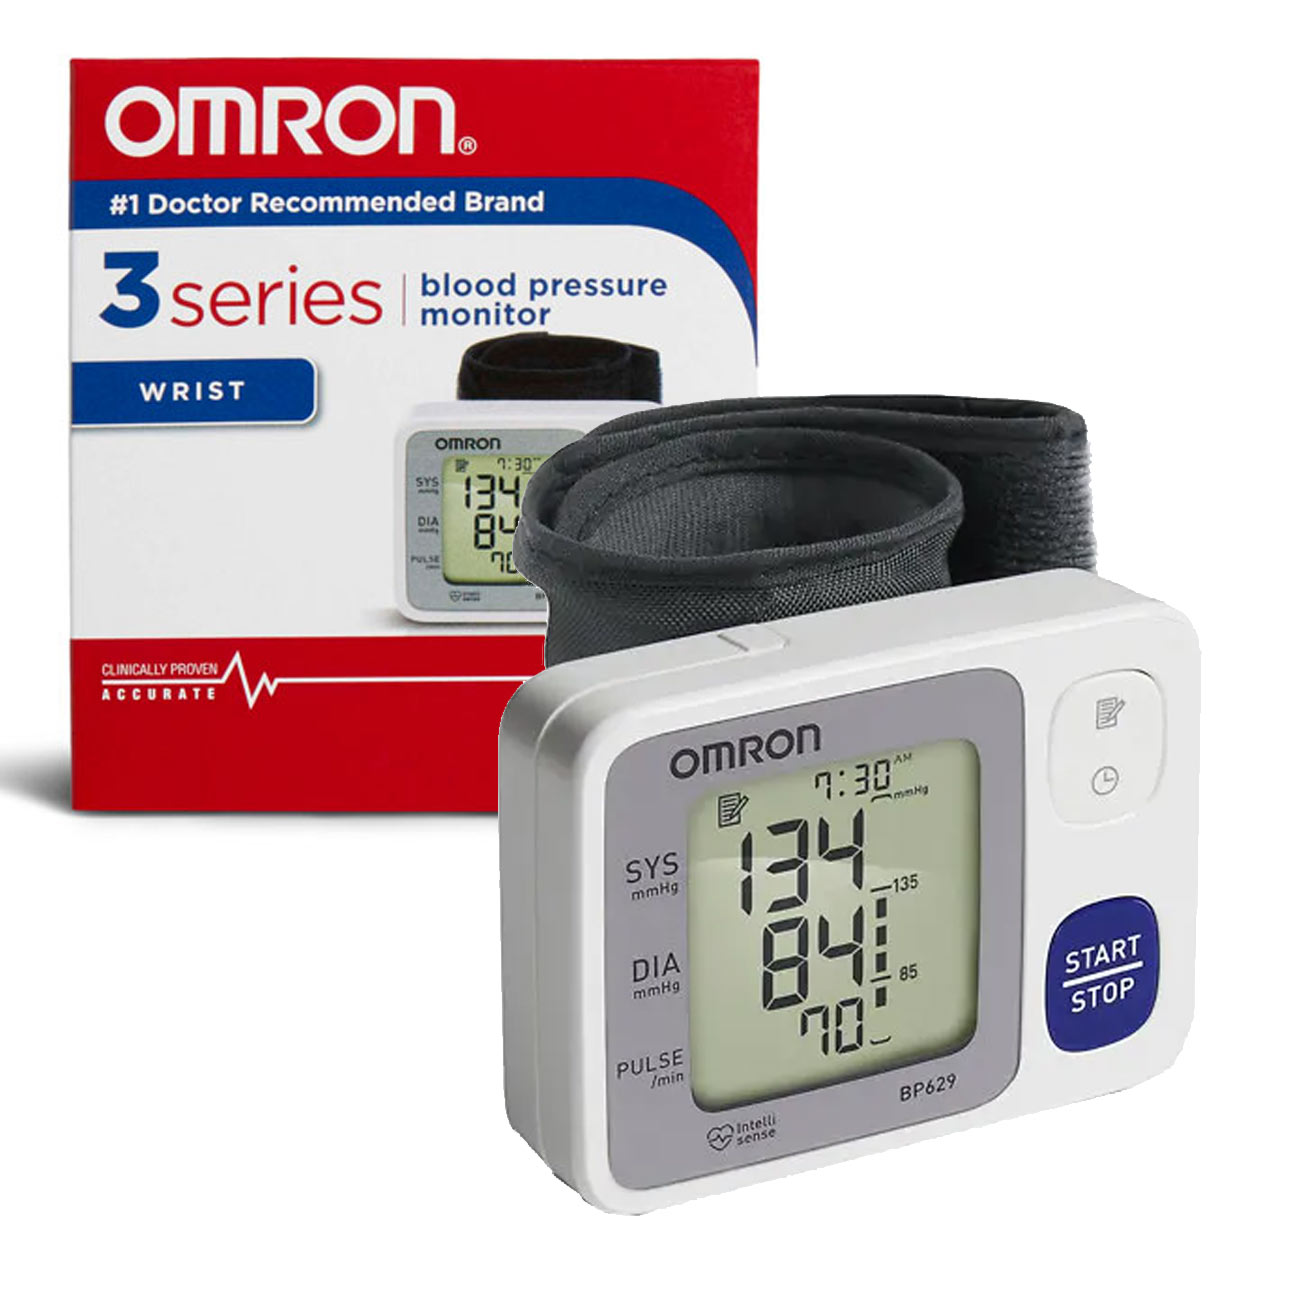 Omron Auto-Inflating Wrist Blood Pressure Monitor Price: $65.95